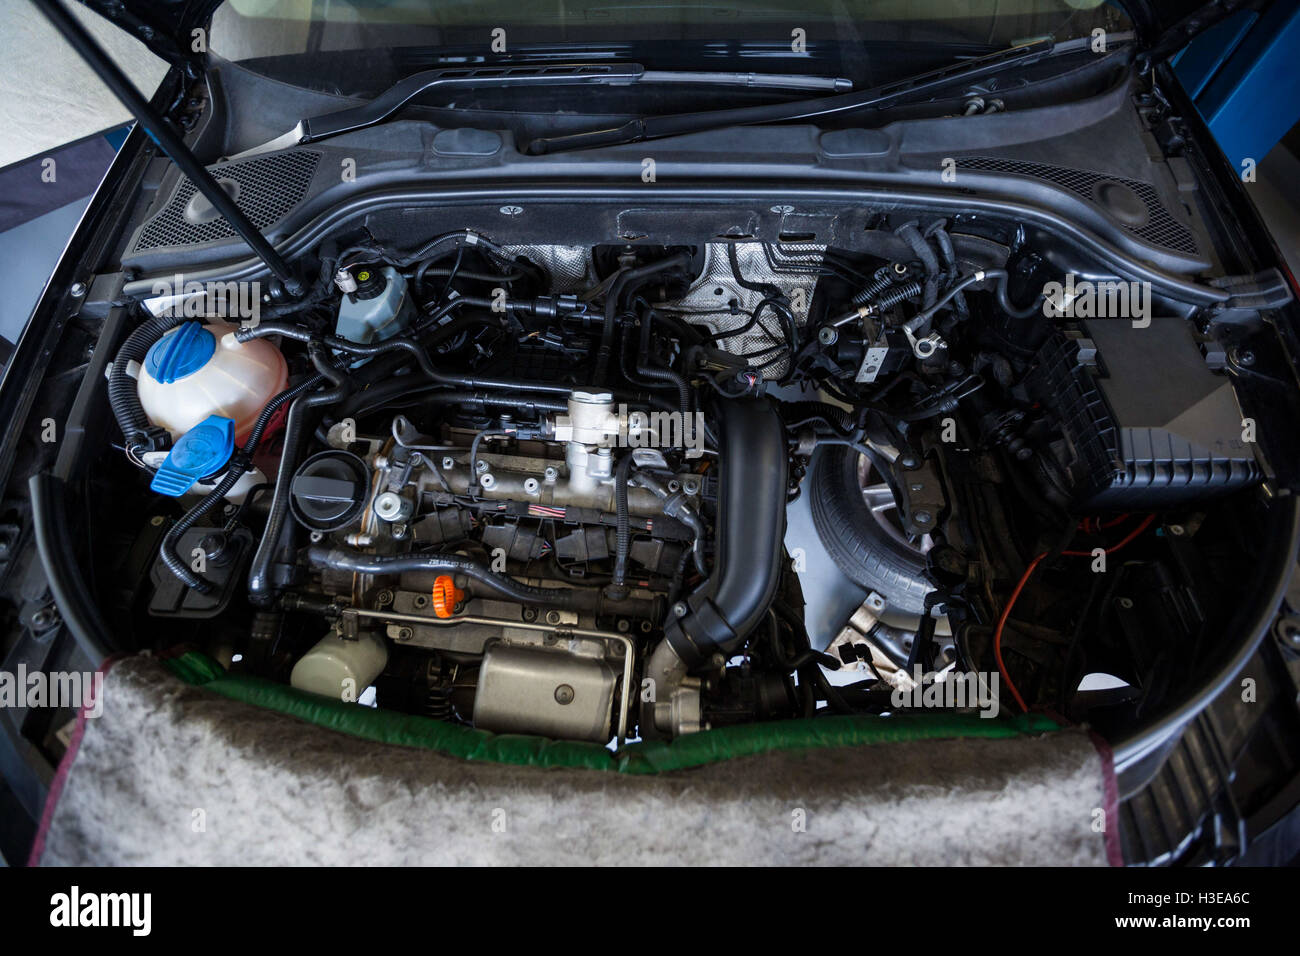 Cars with open hood for servicing - Stock Image